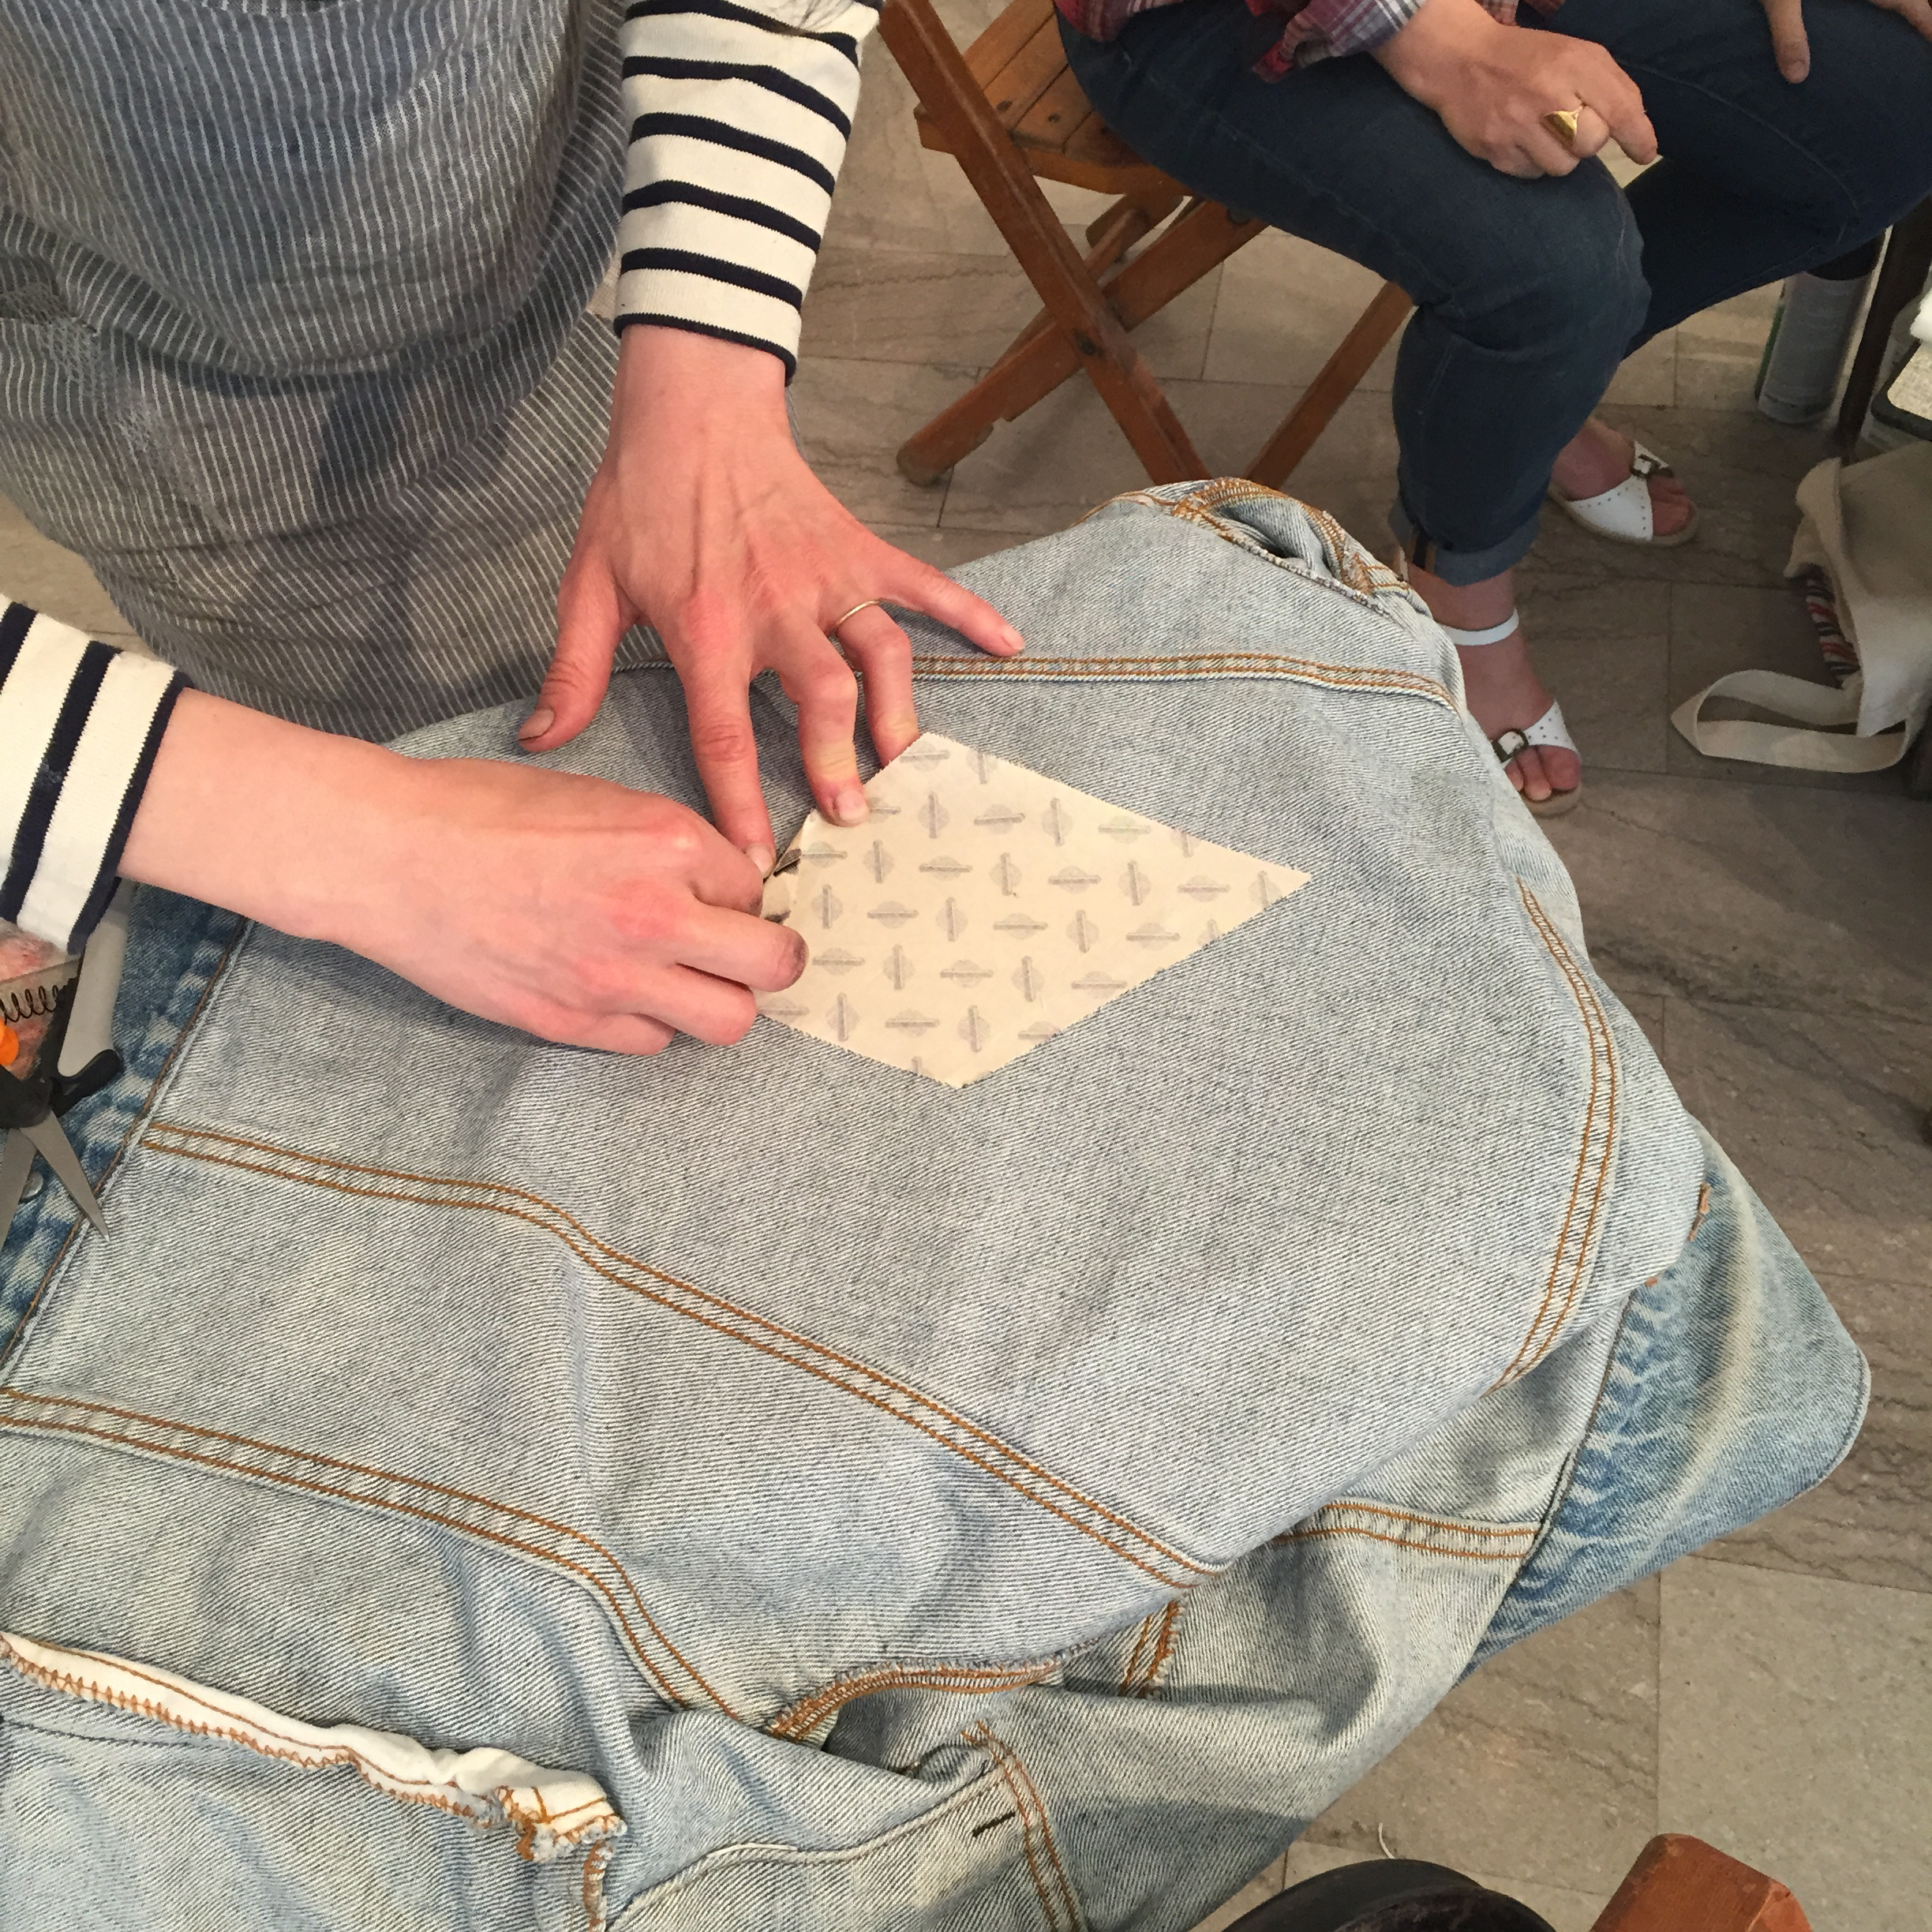 Thumbnail photo: Two Itinerant Quilters